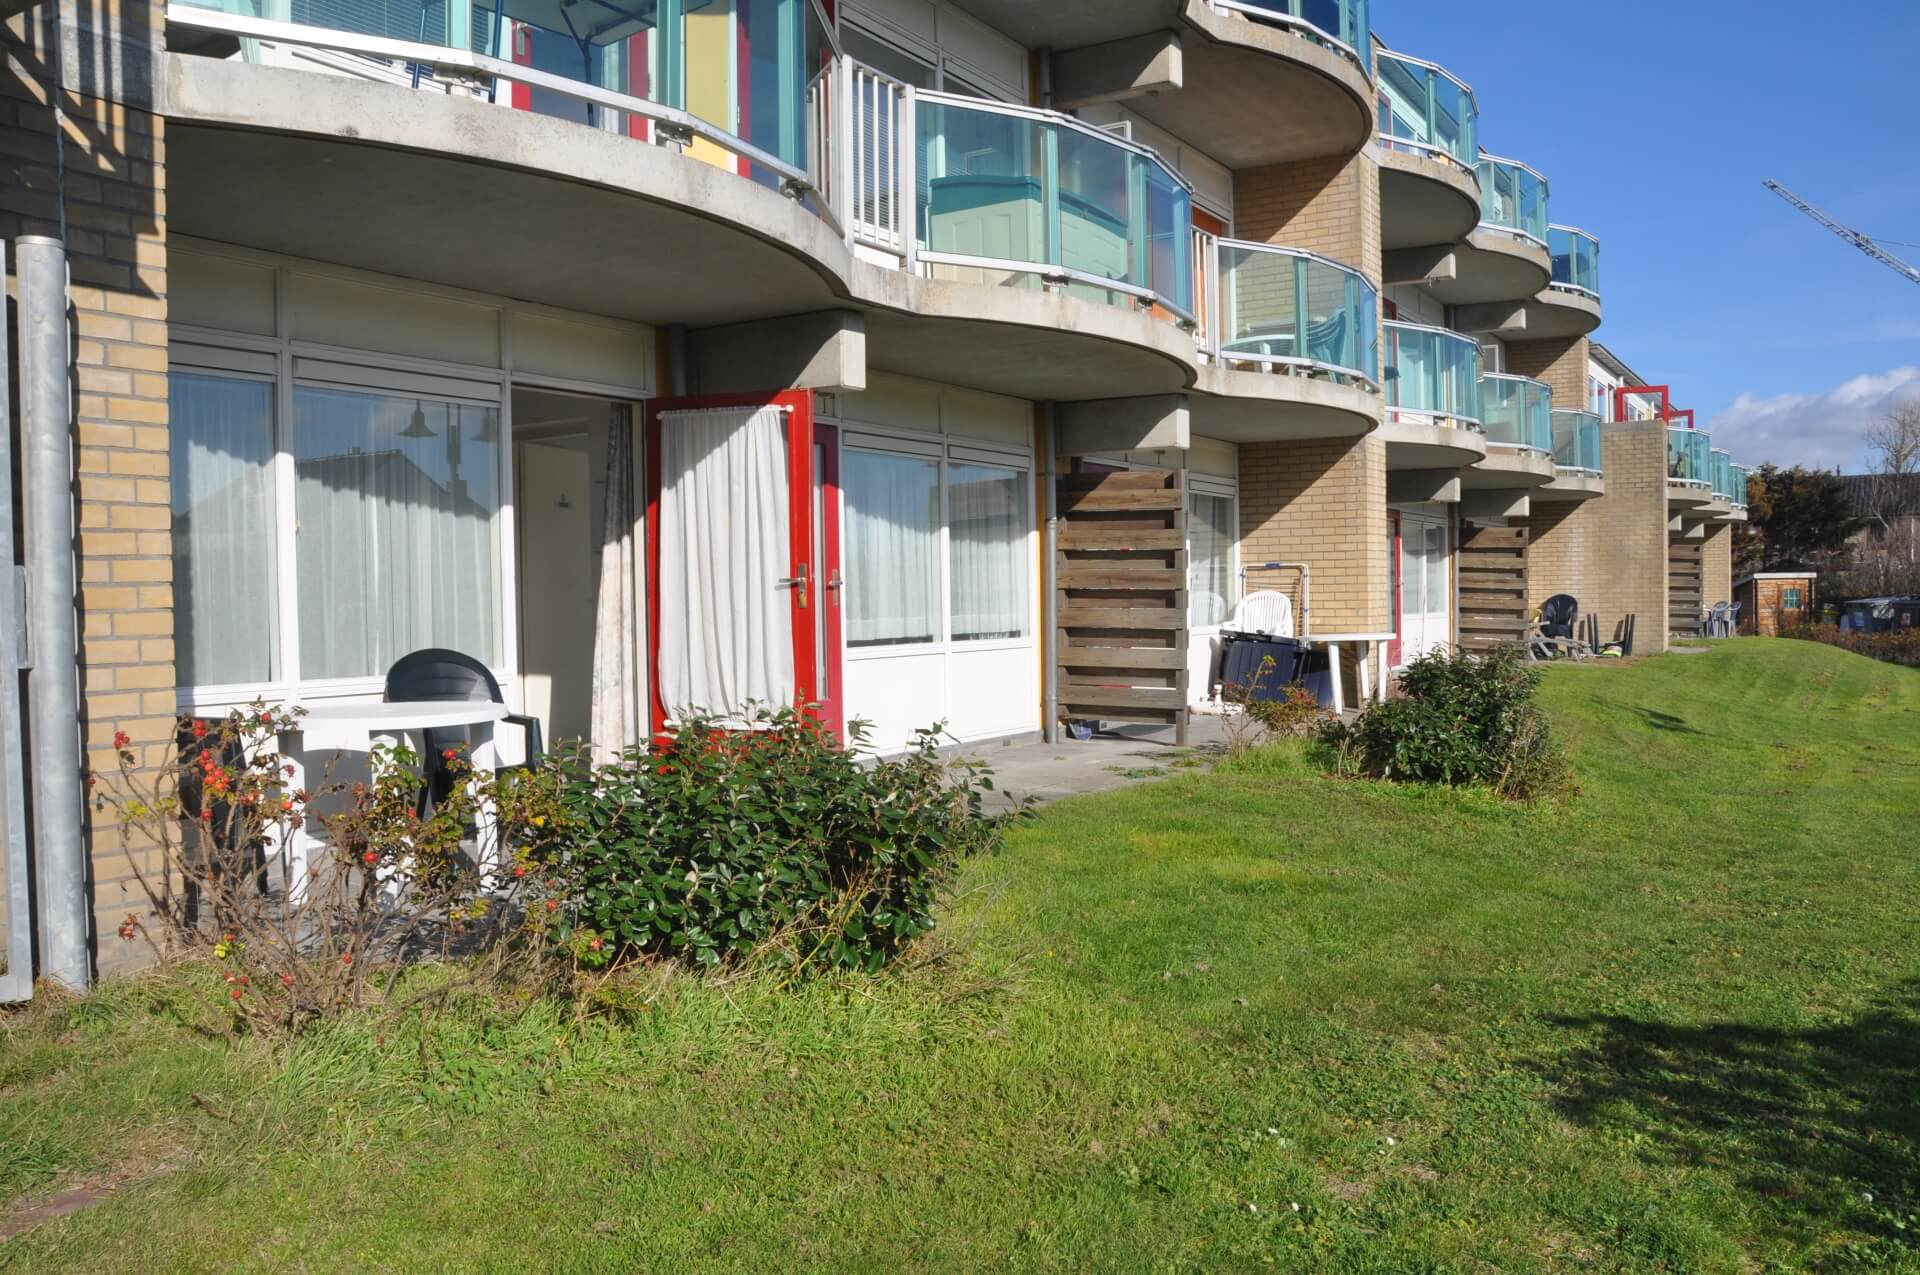 Appartementen Beach in Callantsoog - Iprojekt